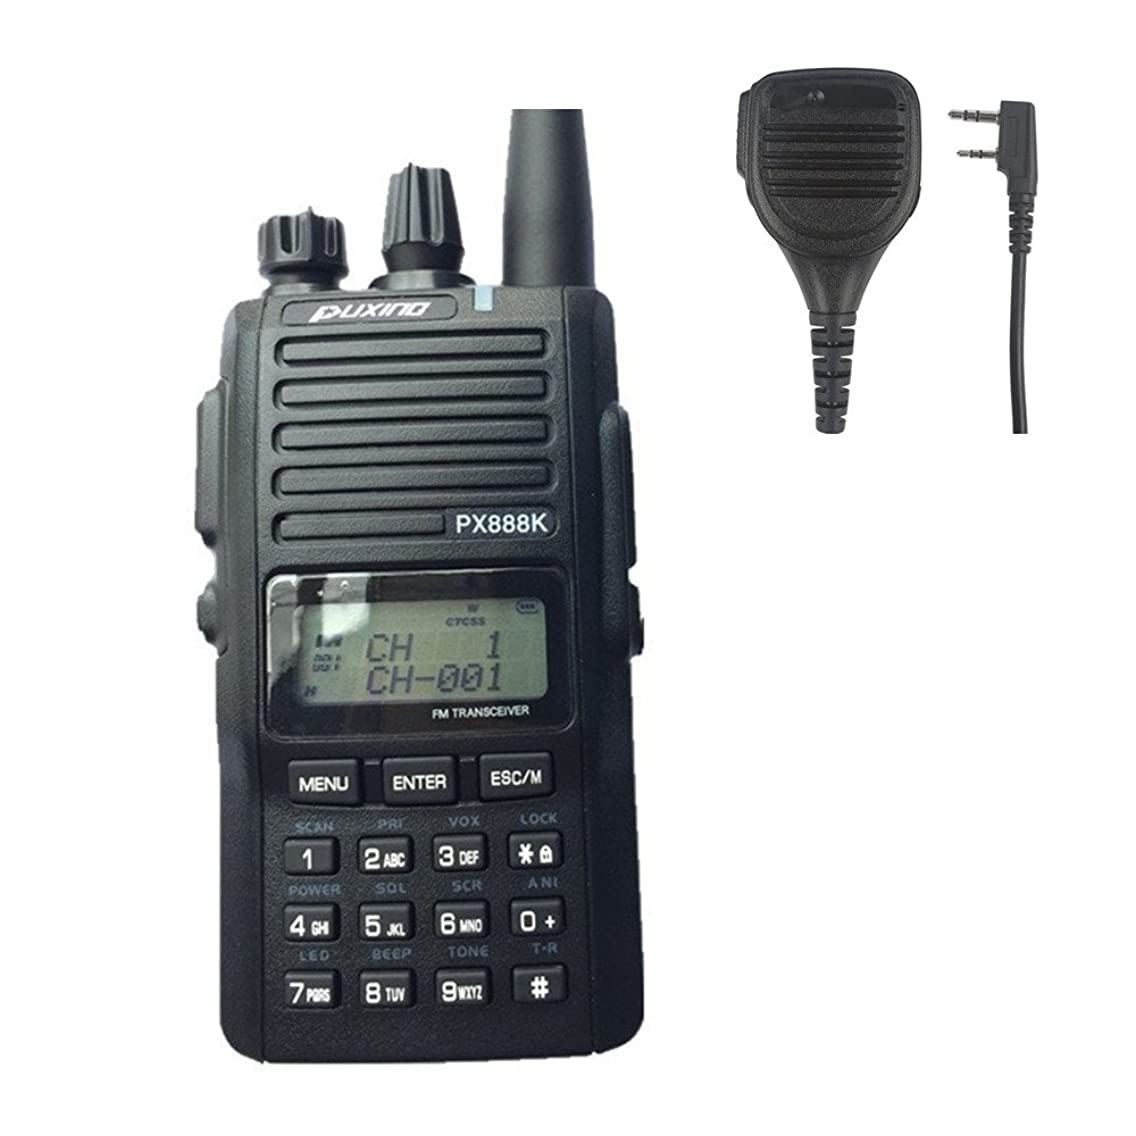 PUXING PX-888K Dual Band 5W Output Power Ruggerd Handheld Two Way Radio(Black) with Free Speaker Microphone